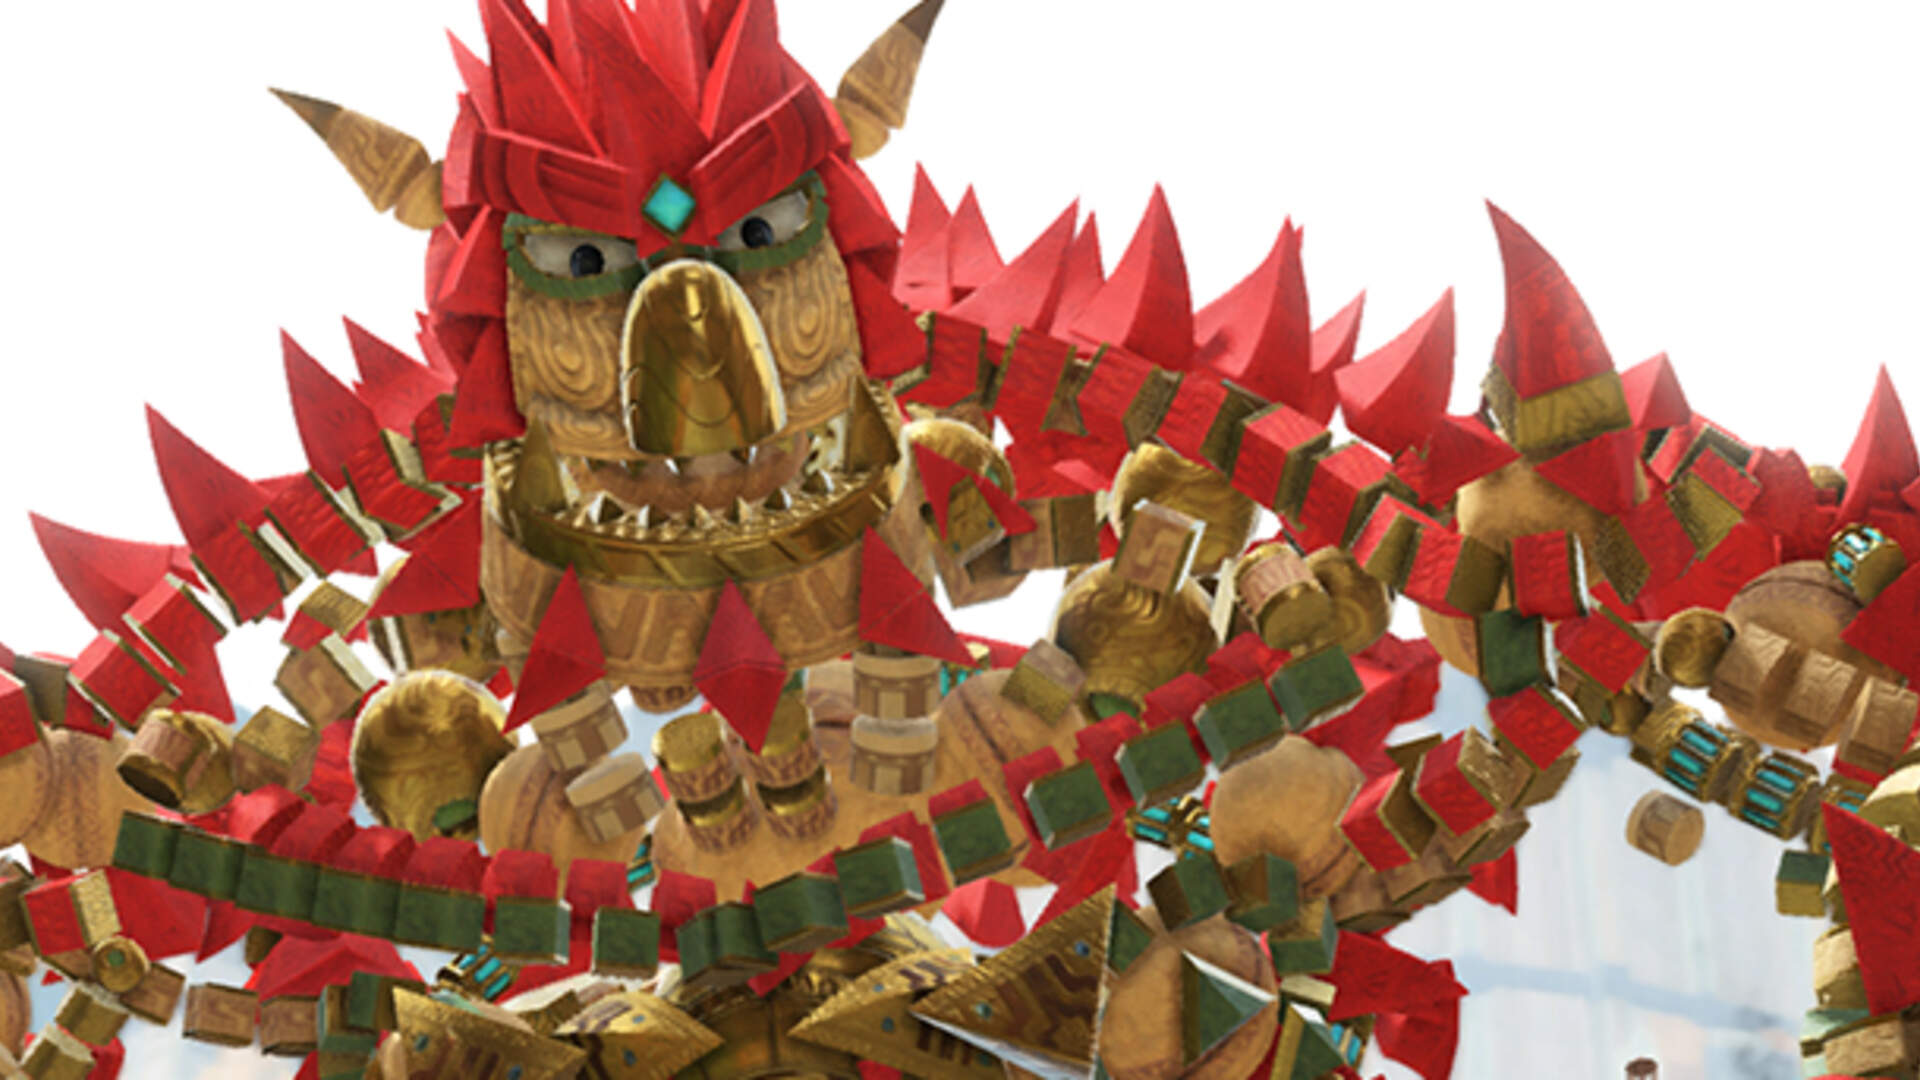 Knack 2's Biggest Improvement—It's Not Trying to be a $60 Tech Demo Anymore